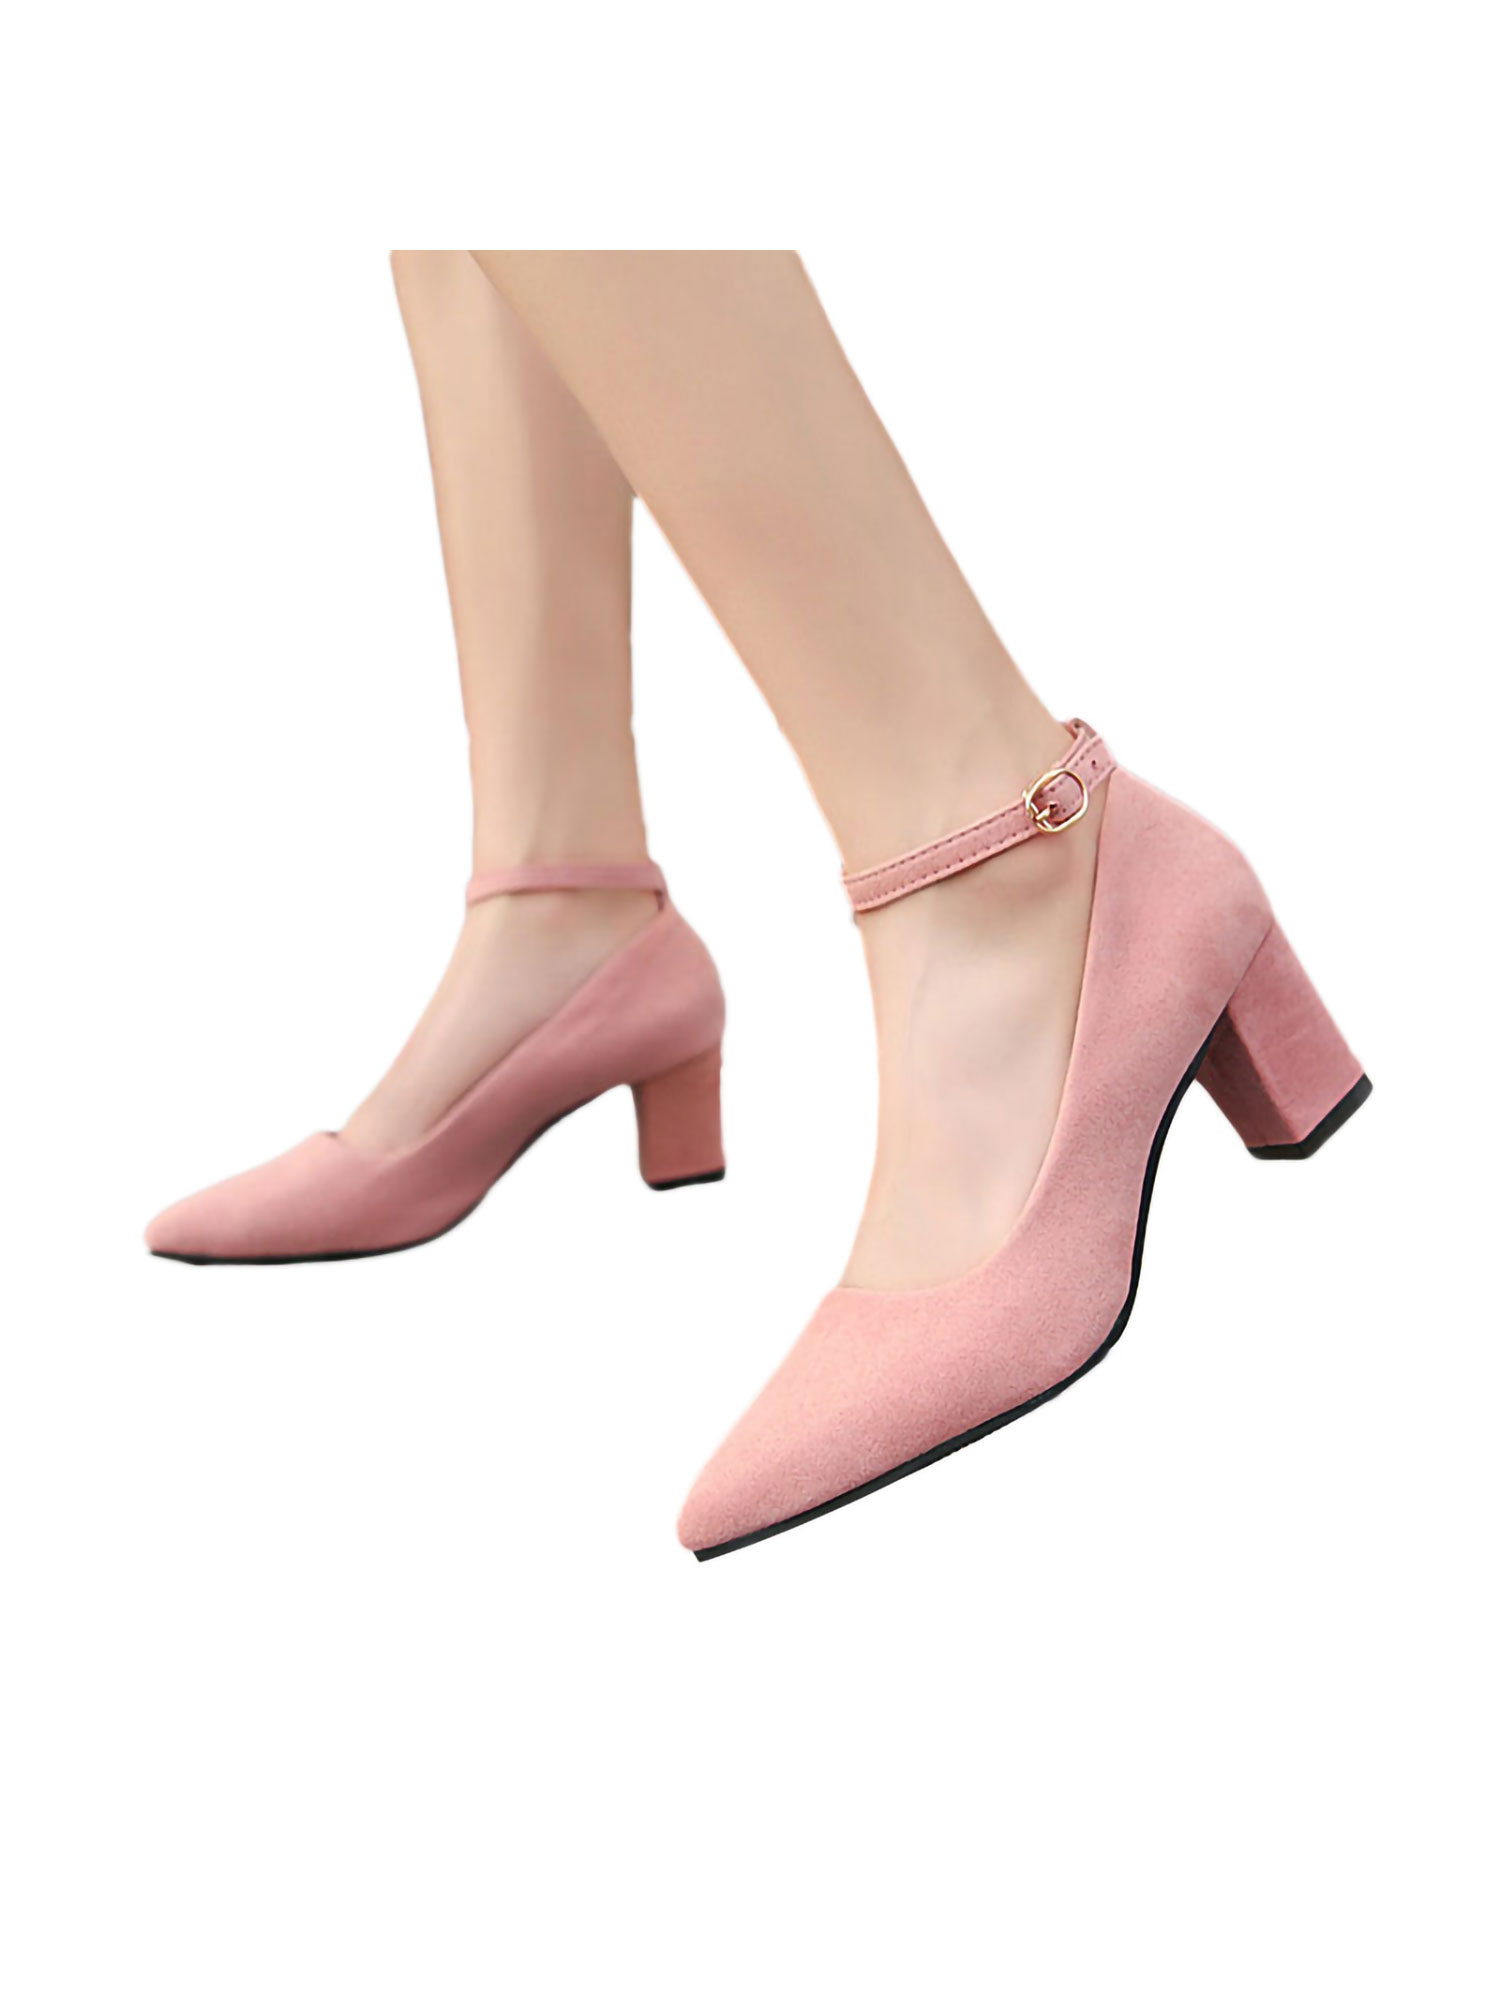 Details about  /Womens Patent Leather Pointy Toe Stiletto High Heels Slingback Sandals Prom Shoe